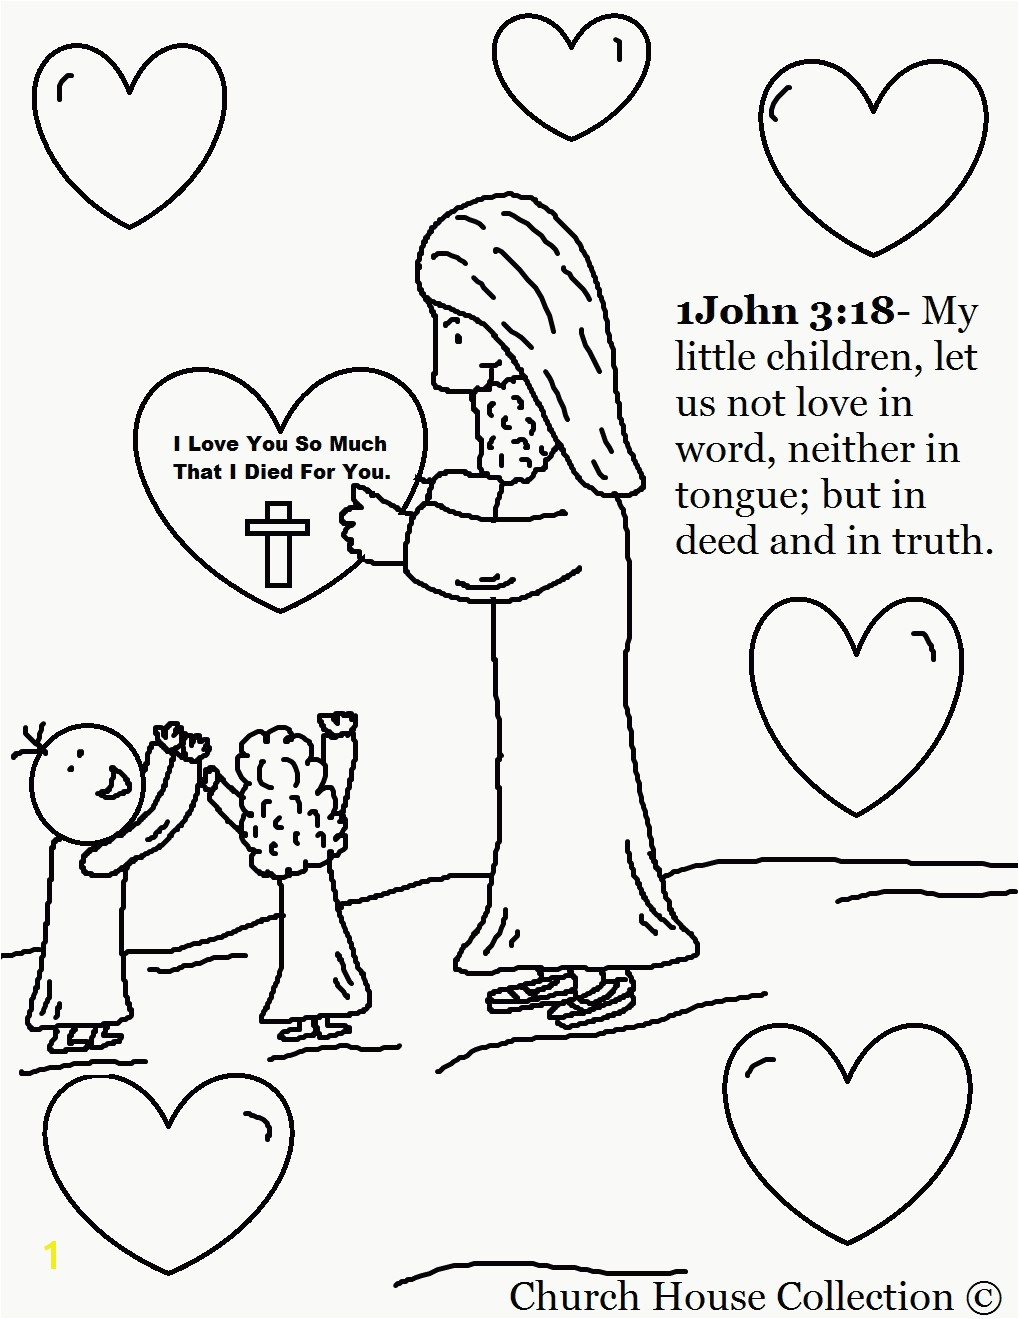 jesus loves me coloring sheet shocking coloring for kids about jesus love many interesting cliparts pic of walks on water page